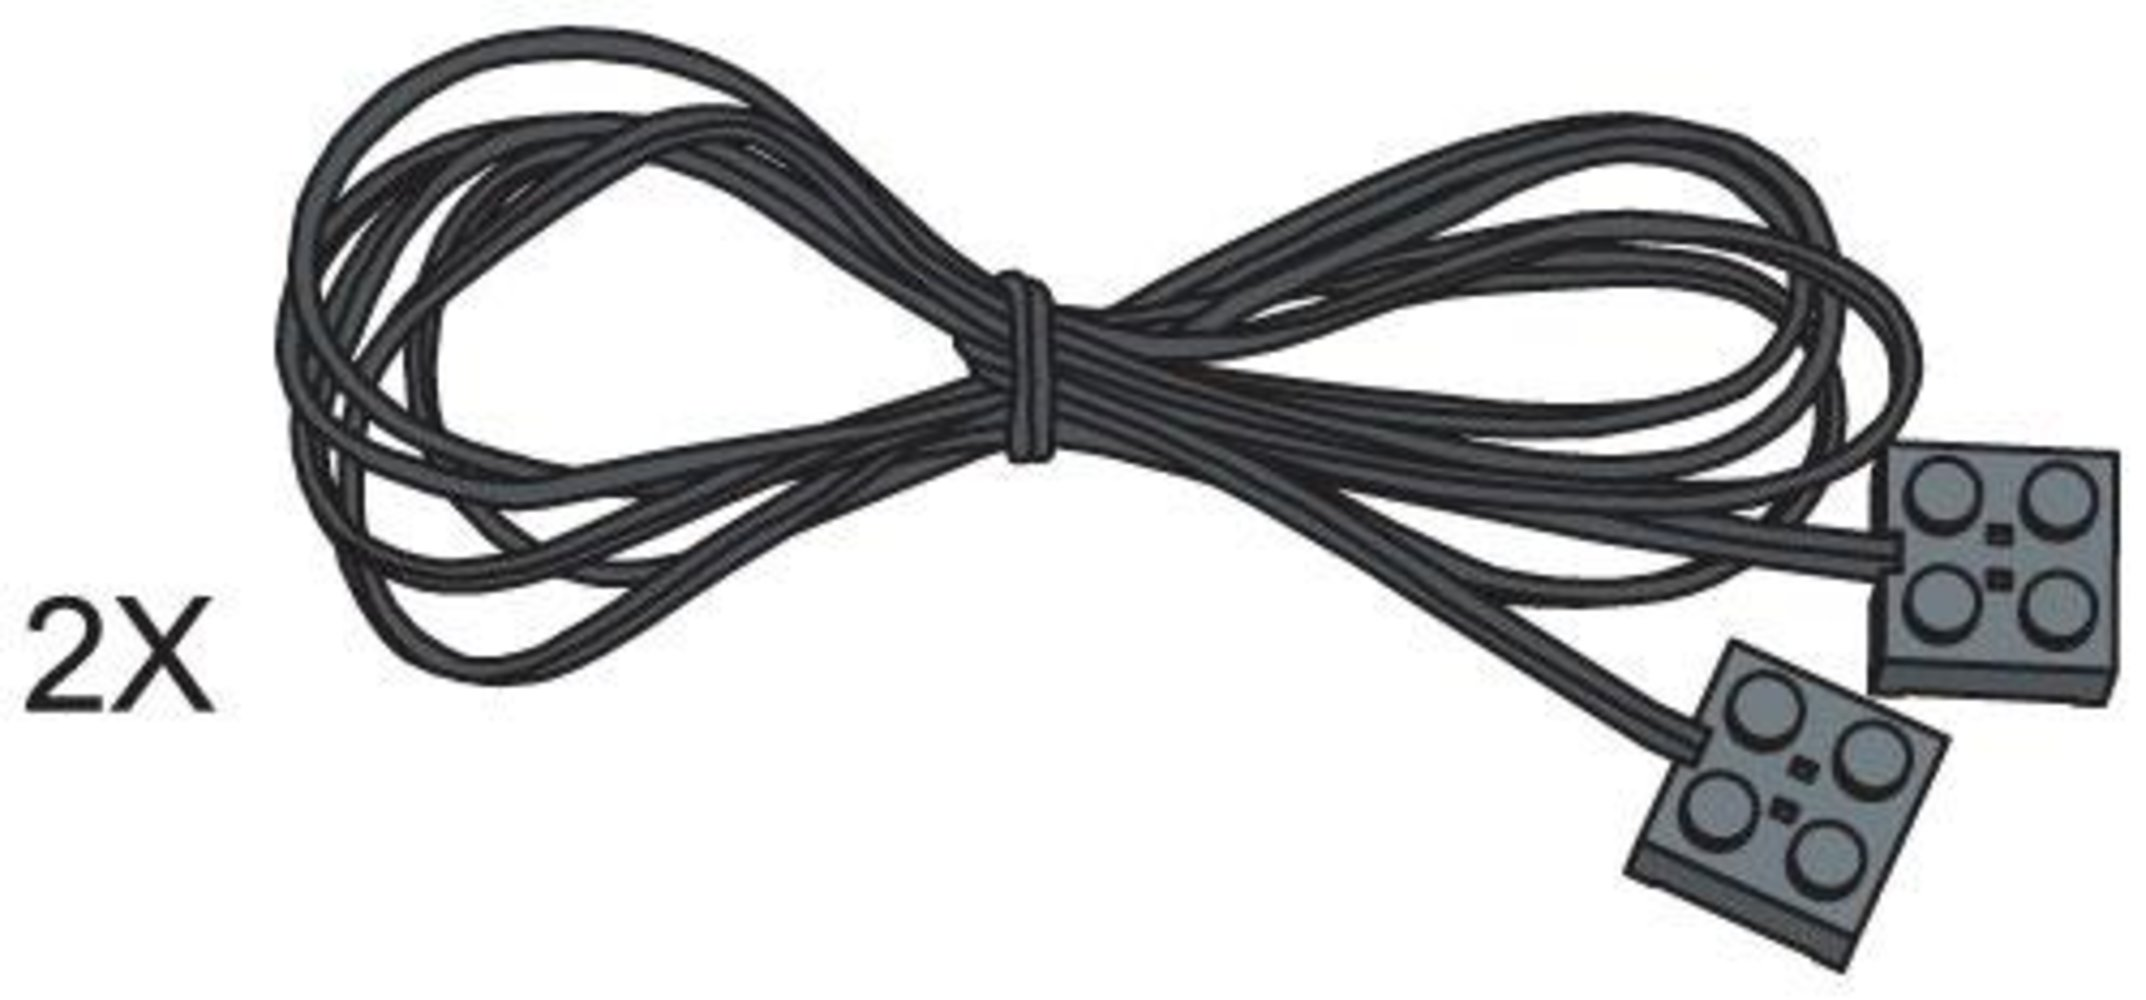 3M Connecting Lead (Set of 2)